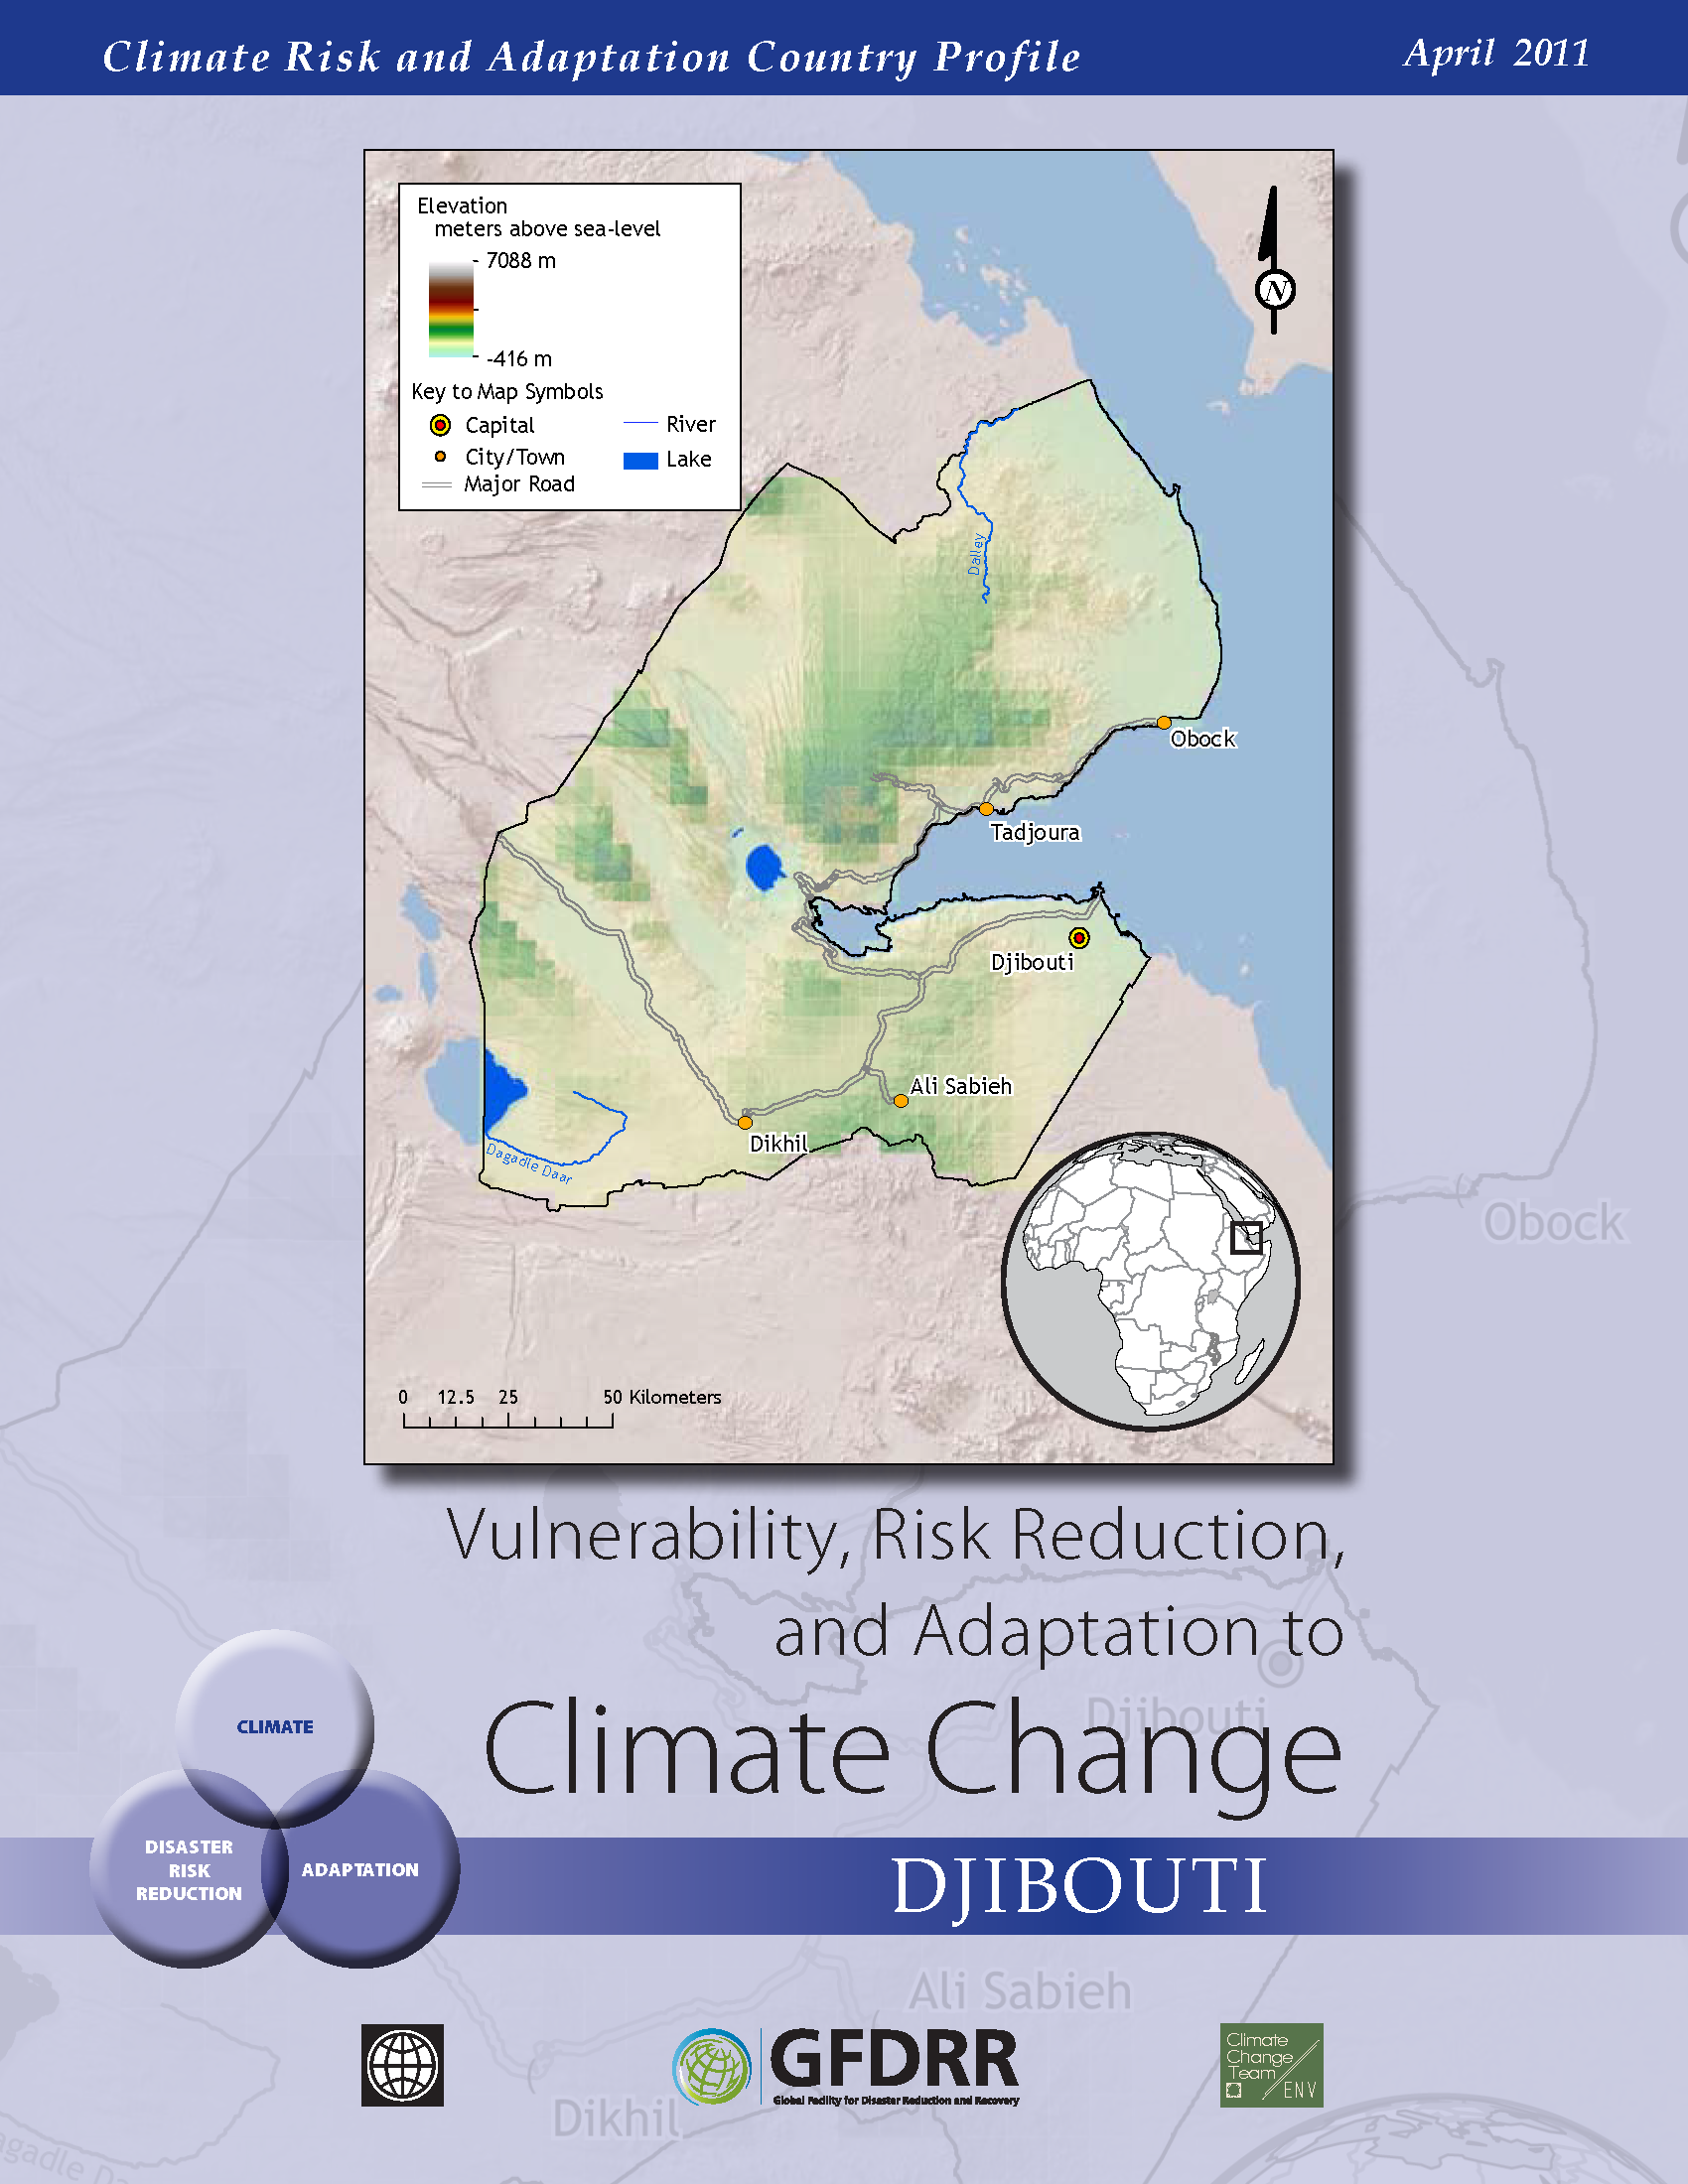 Climate Risk and Adaptation Country Profile: Djibouti